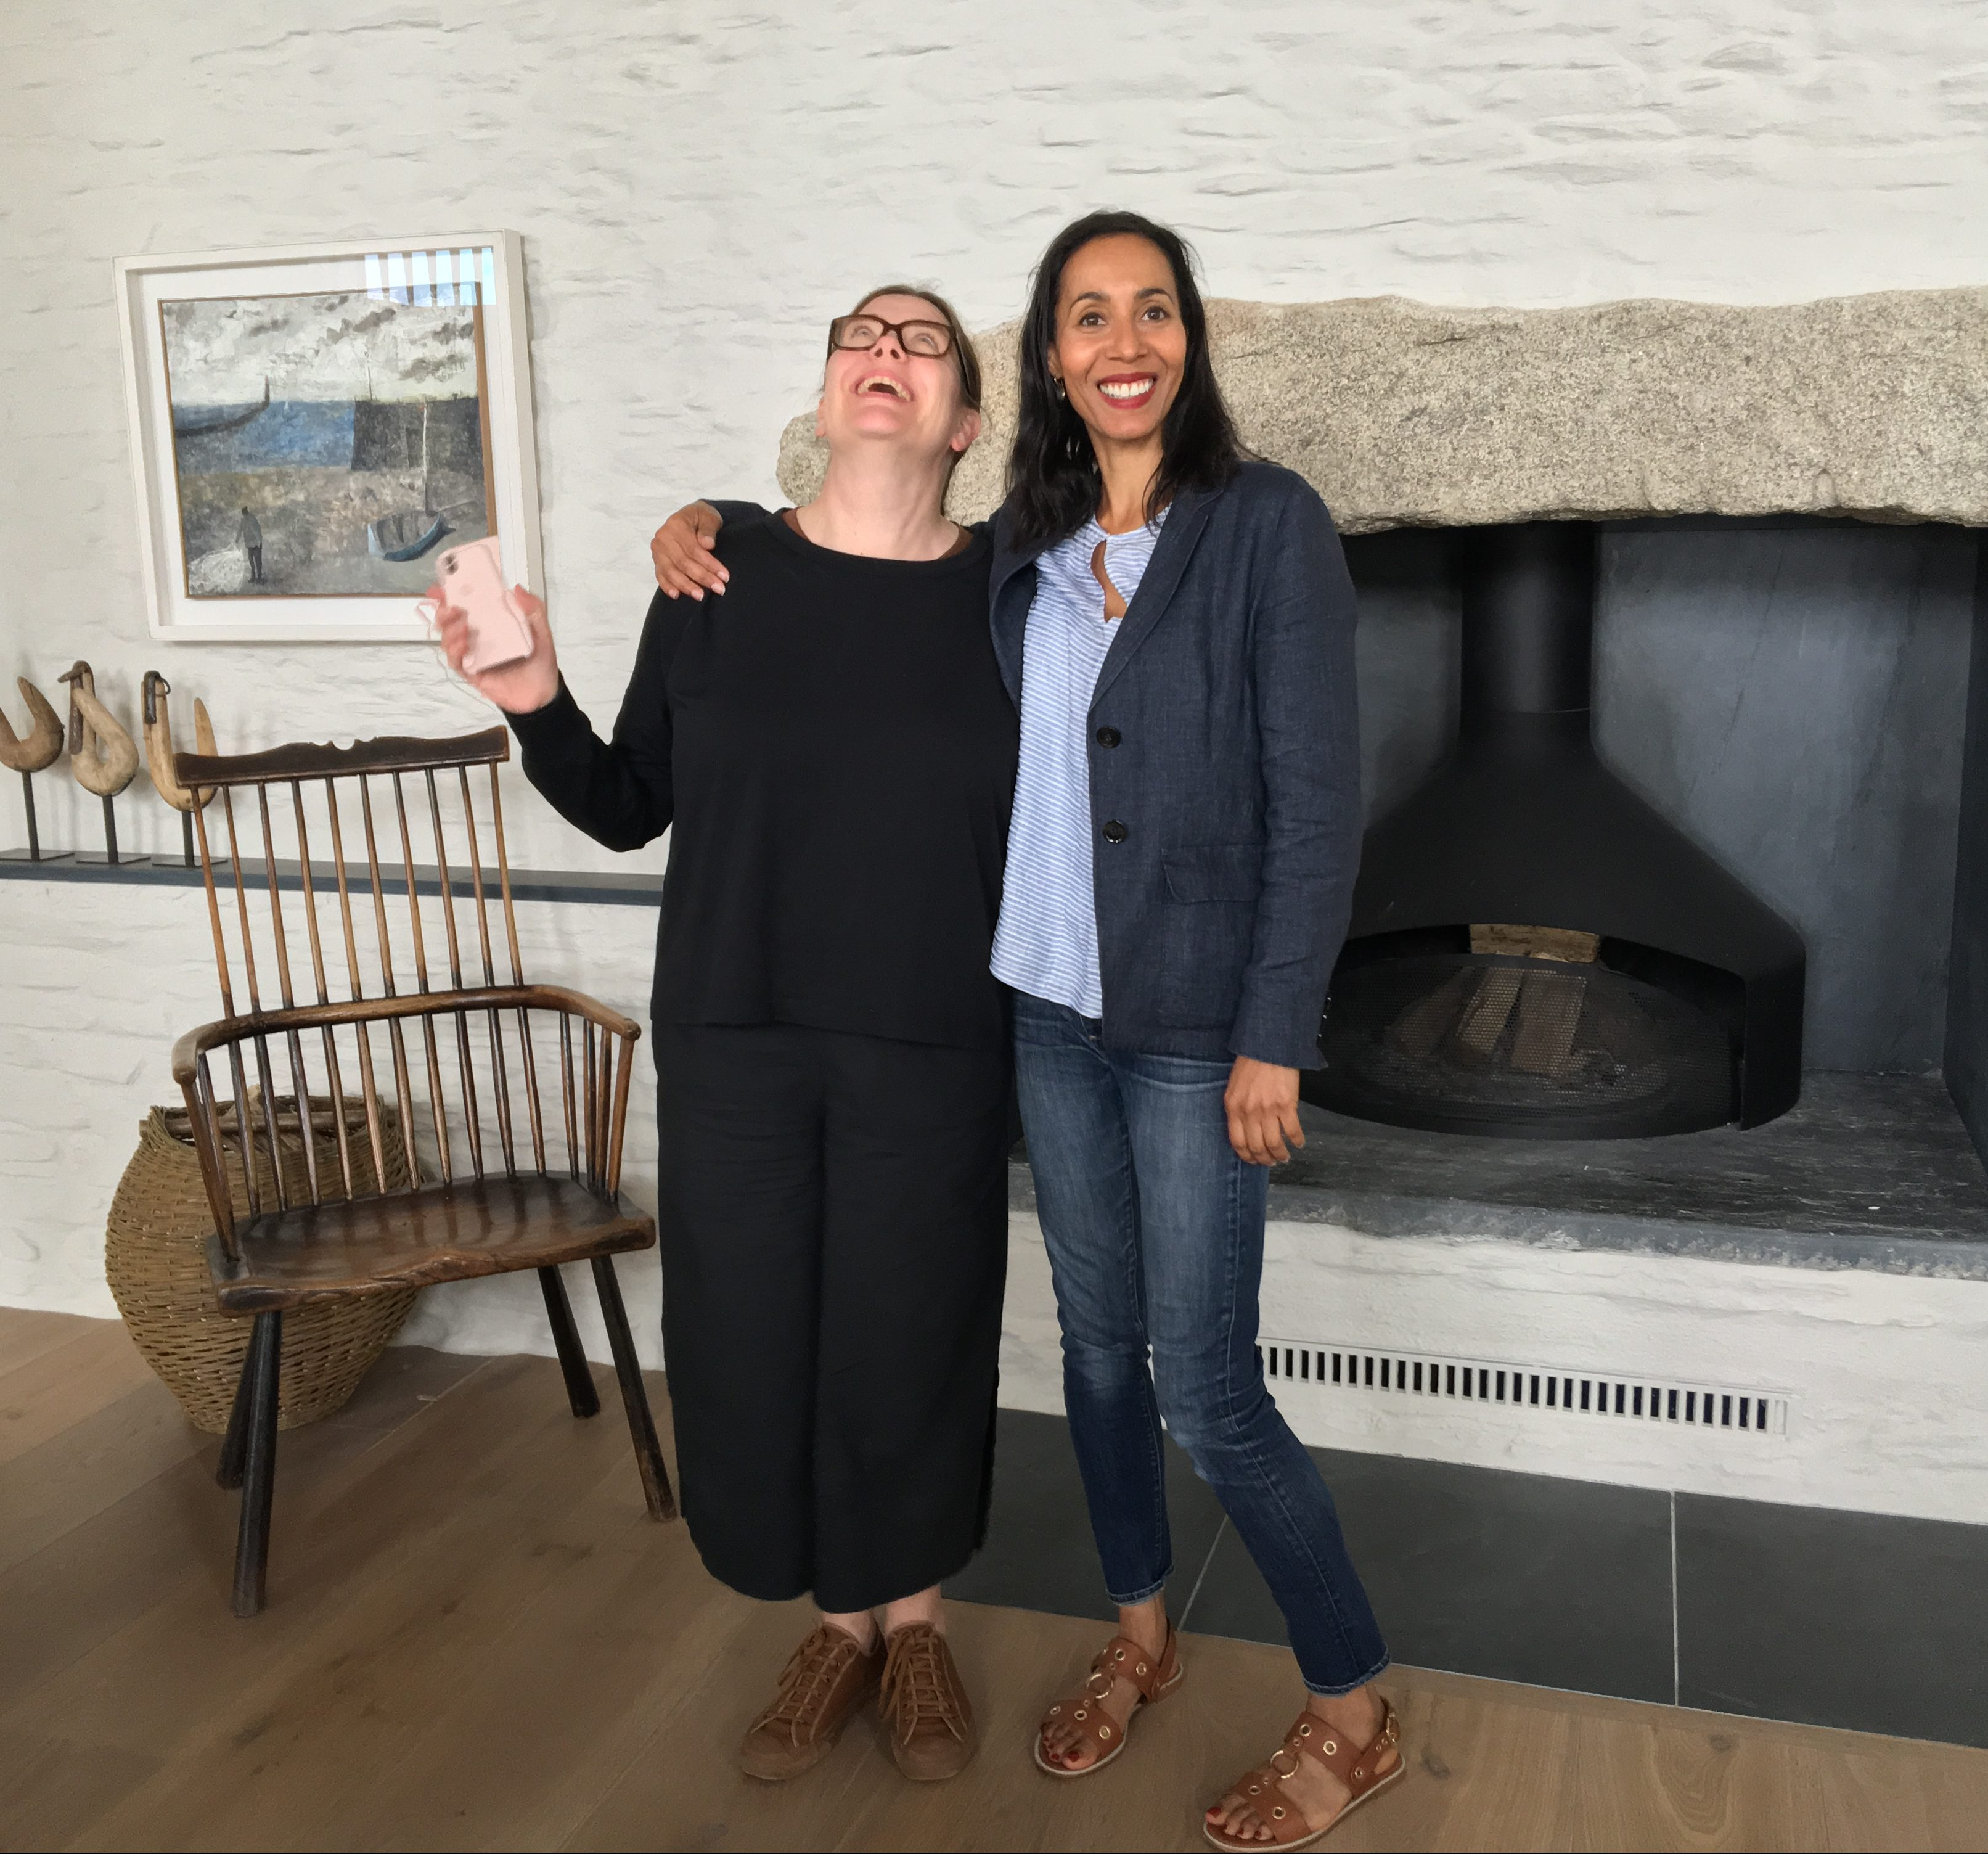 Here I am with Stephanie MacDonald of 6a Architects at 'Coastal House' in Devon, one of the RIBA House of the Year long listed houses I was lucky enough to visit.